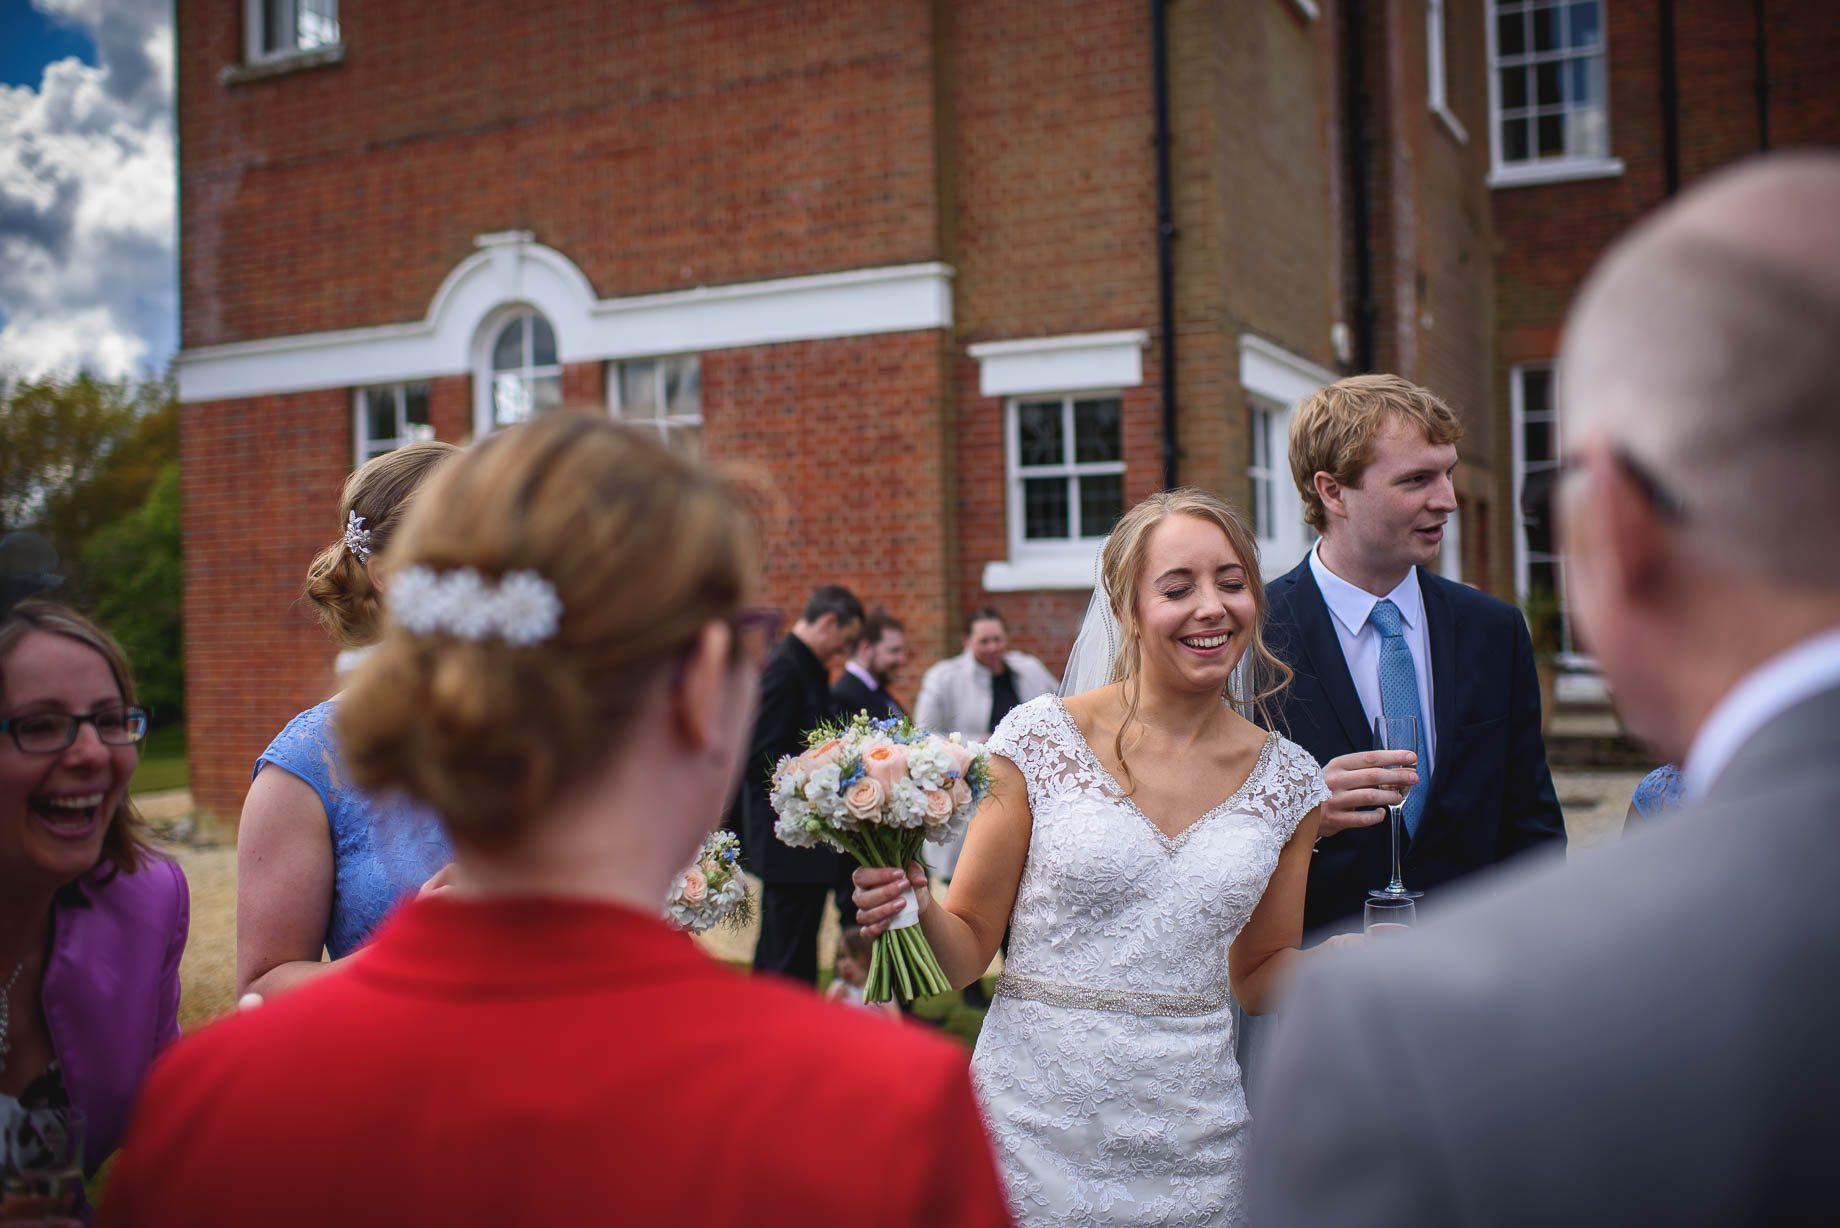 Hampshire wedding photography by Guy Collier - Emily and Tom (76 of 164)